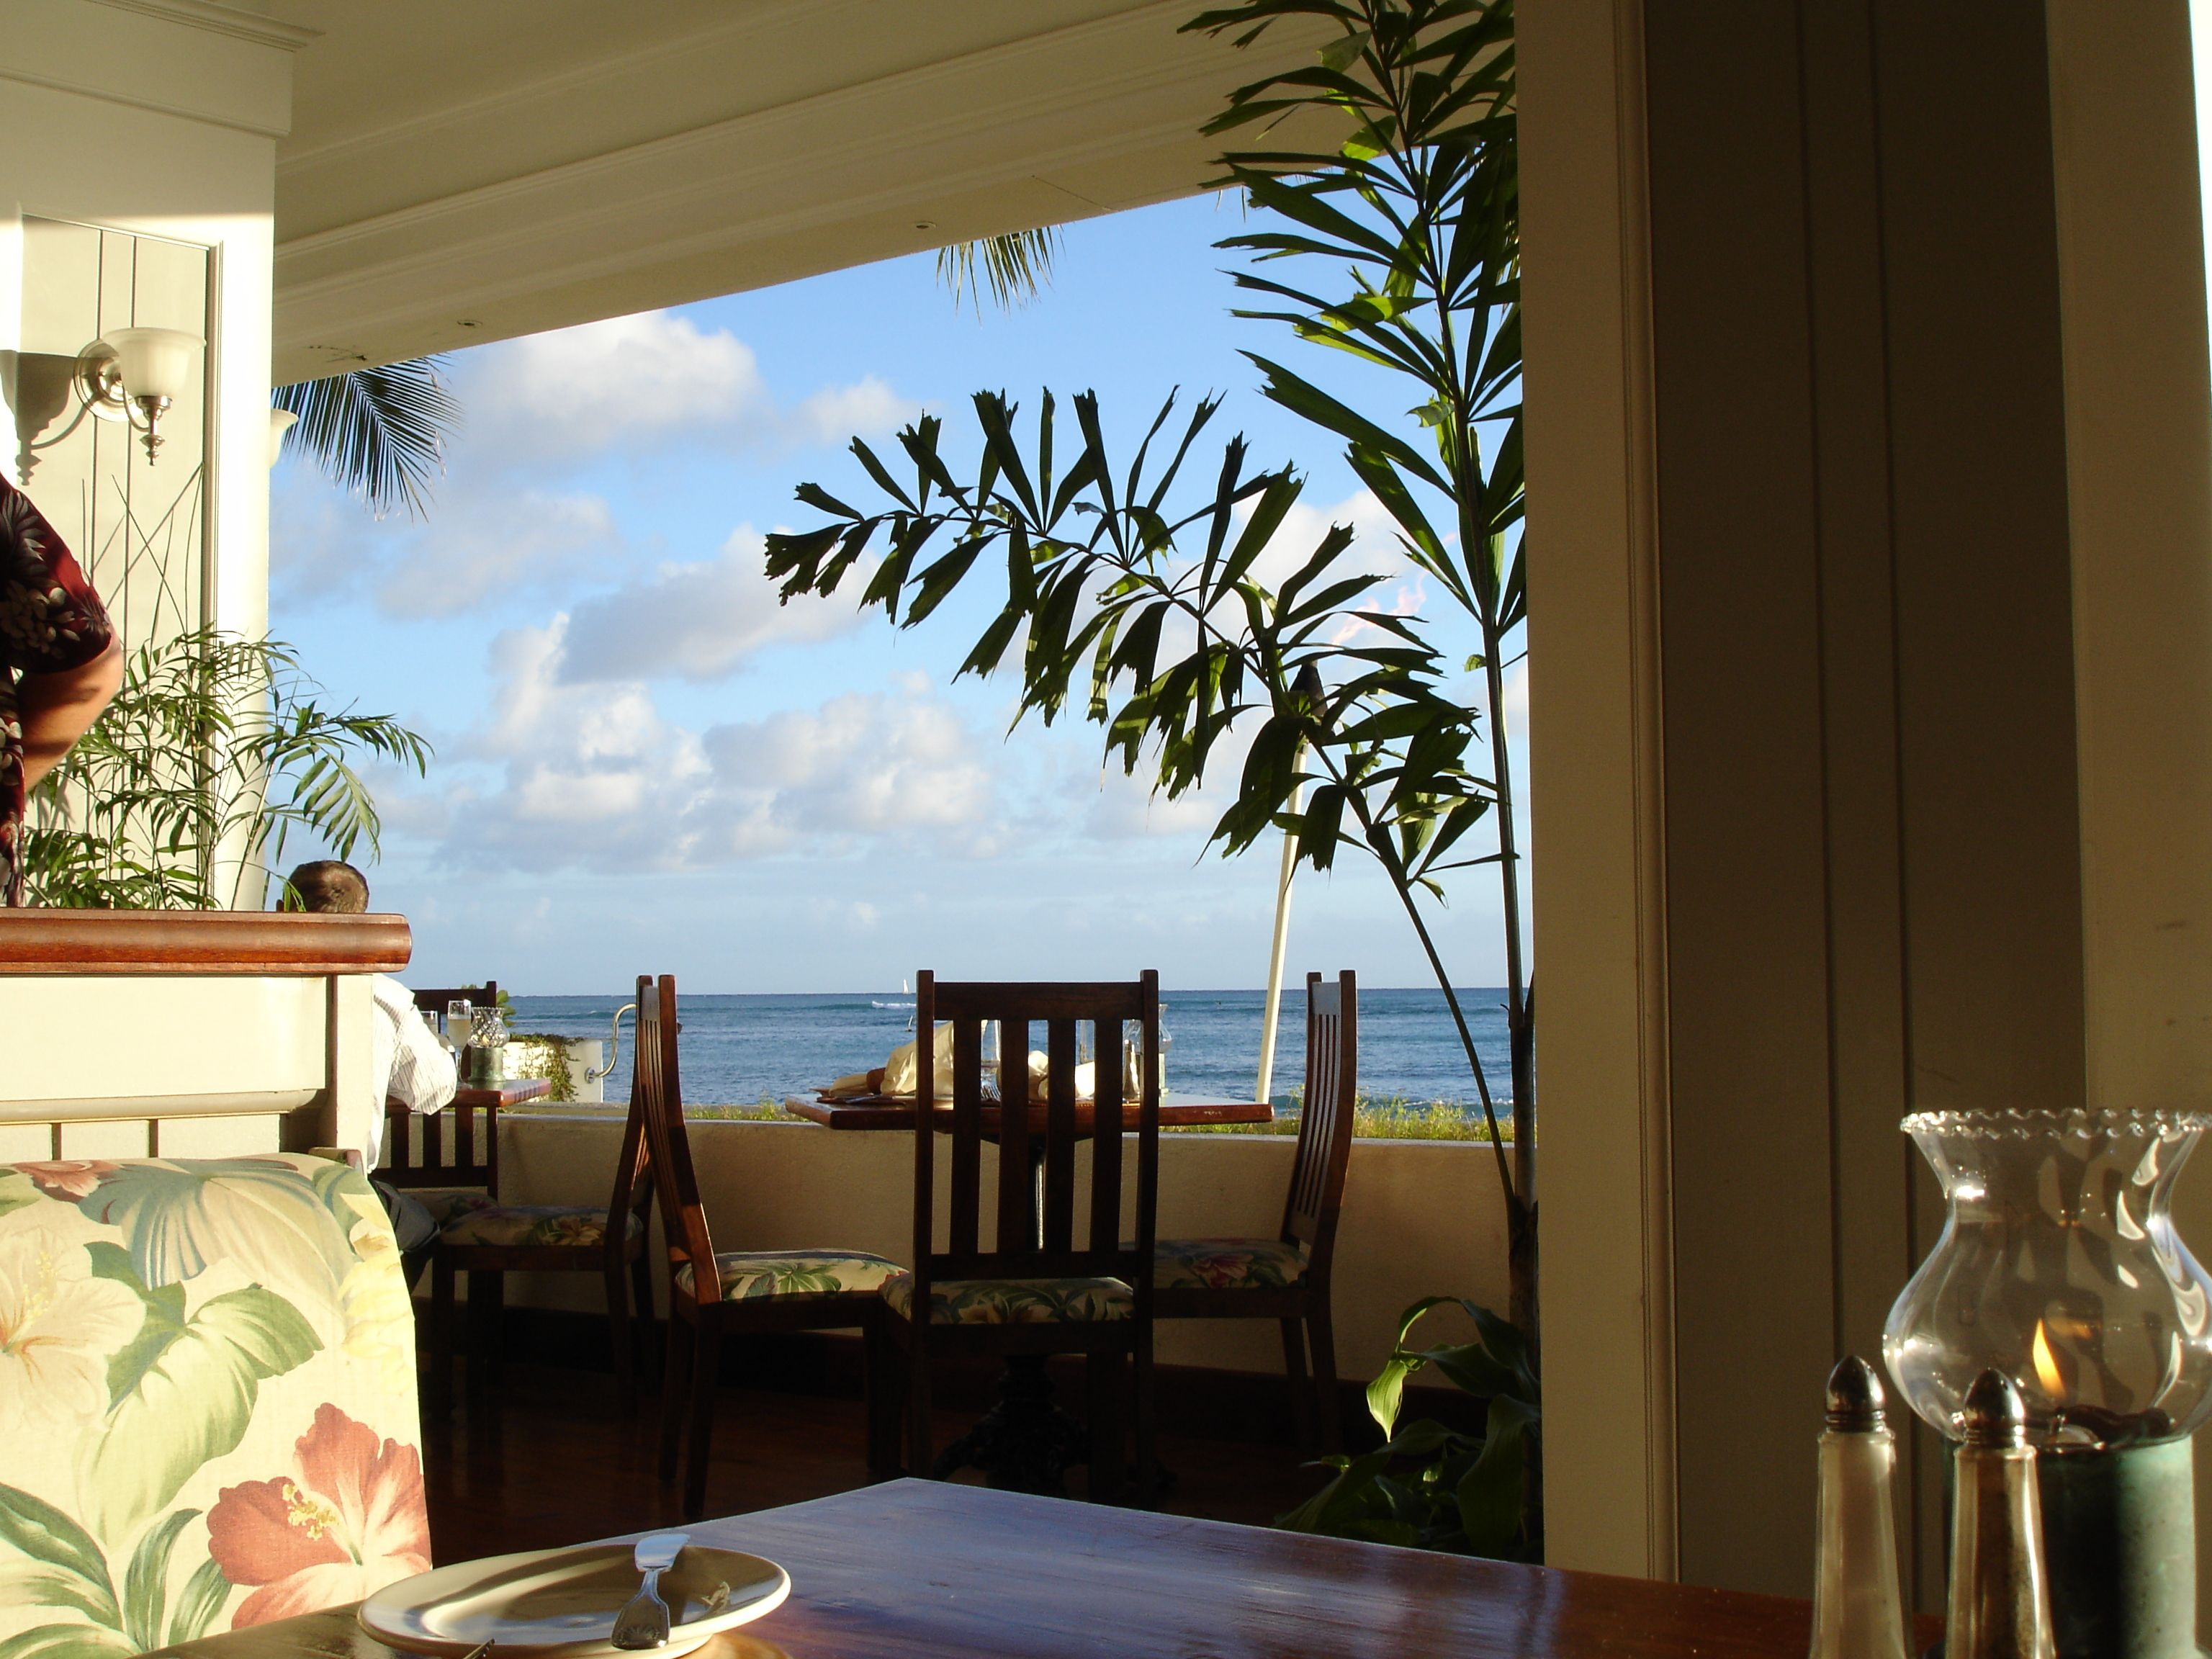 During Our Honeymoon We Went To Ocean Front Restaurant At Outrigger Reef Hotel The Food